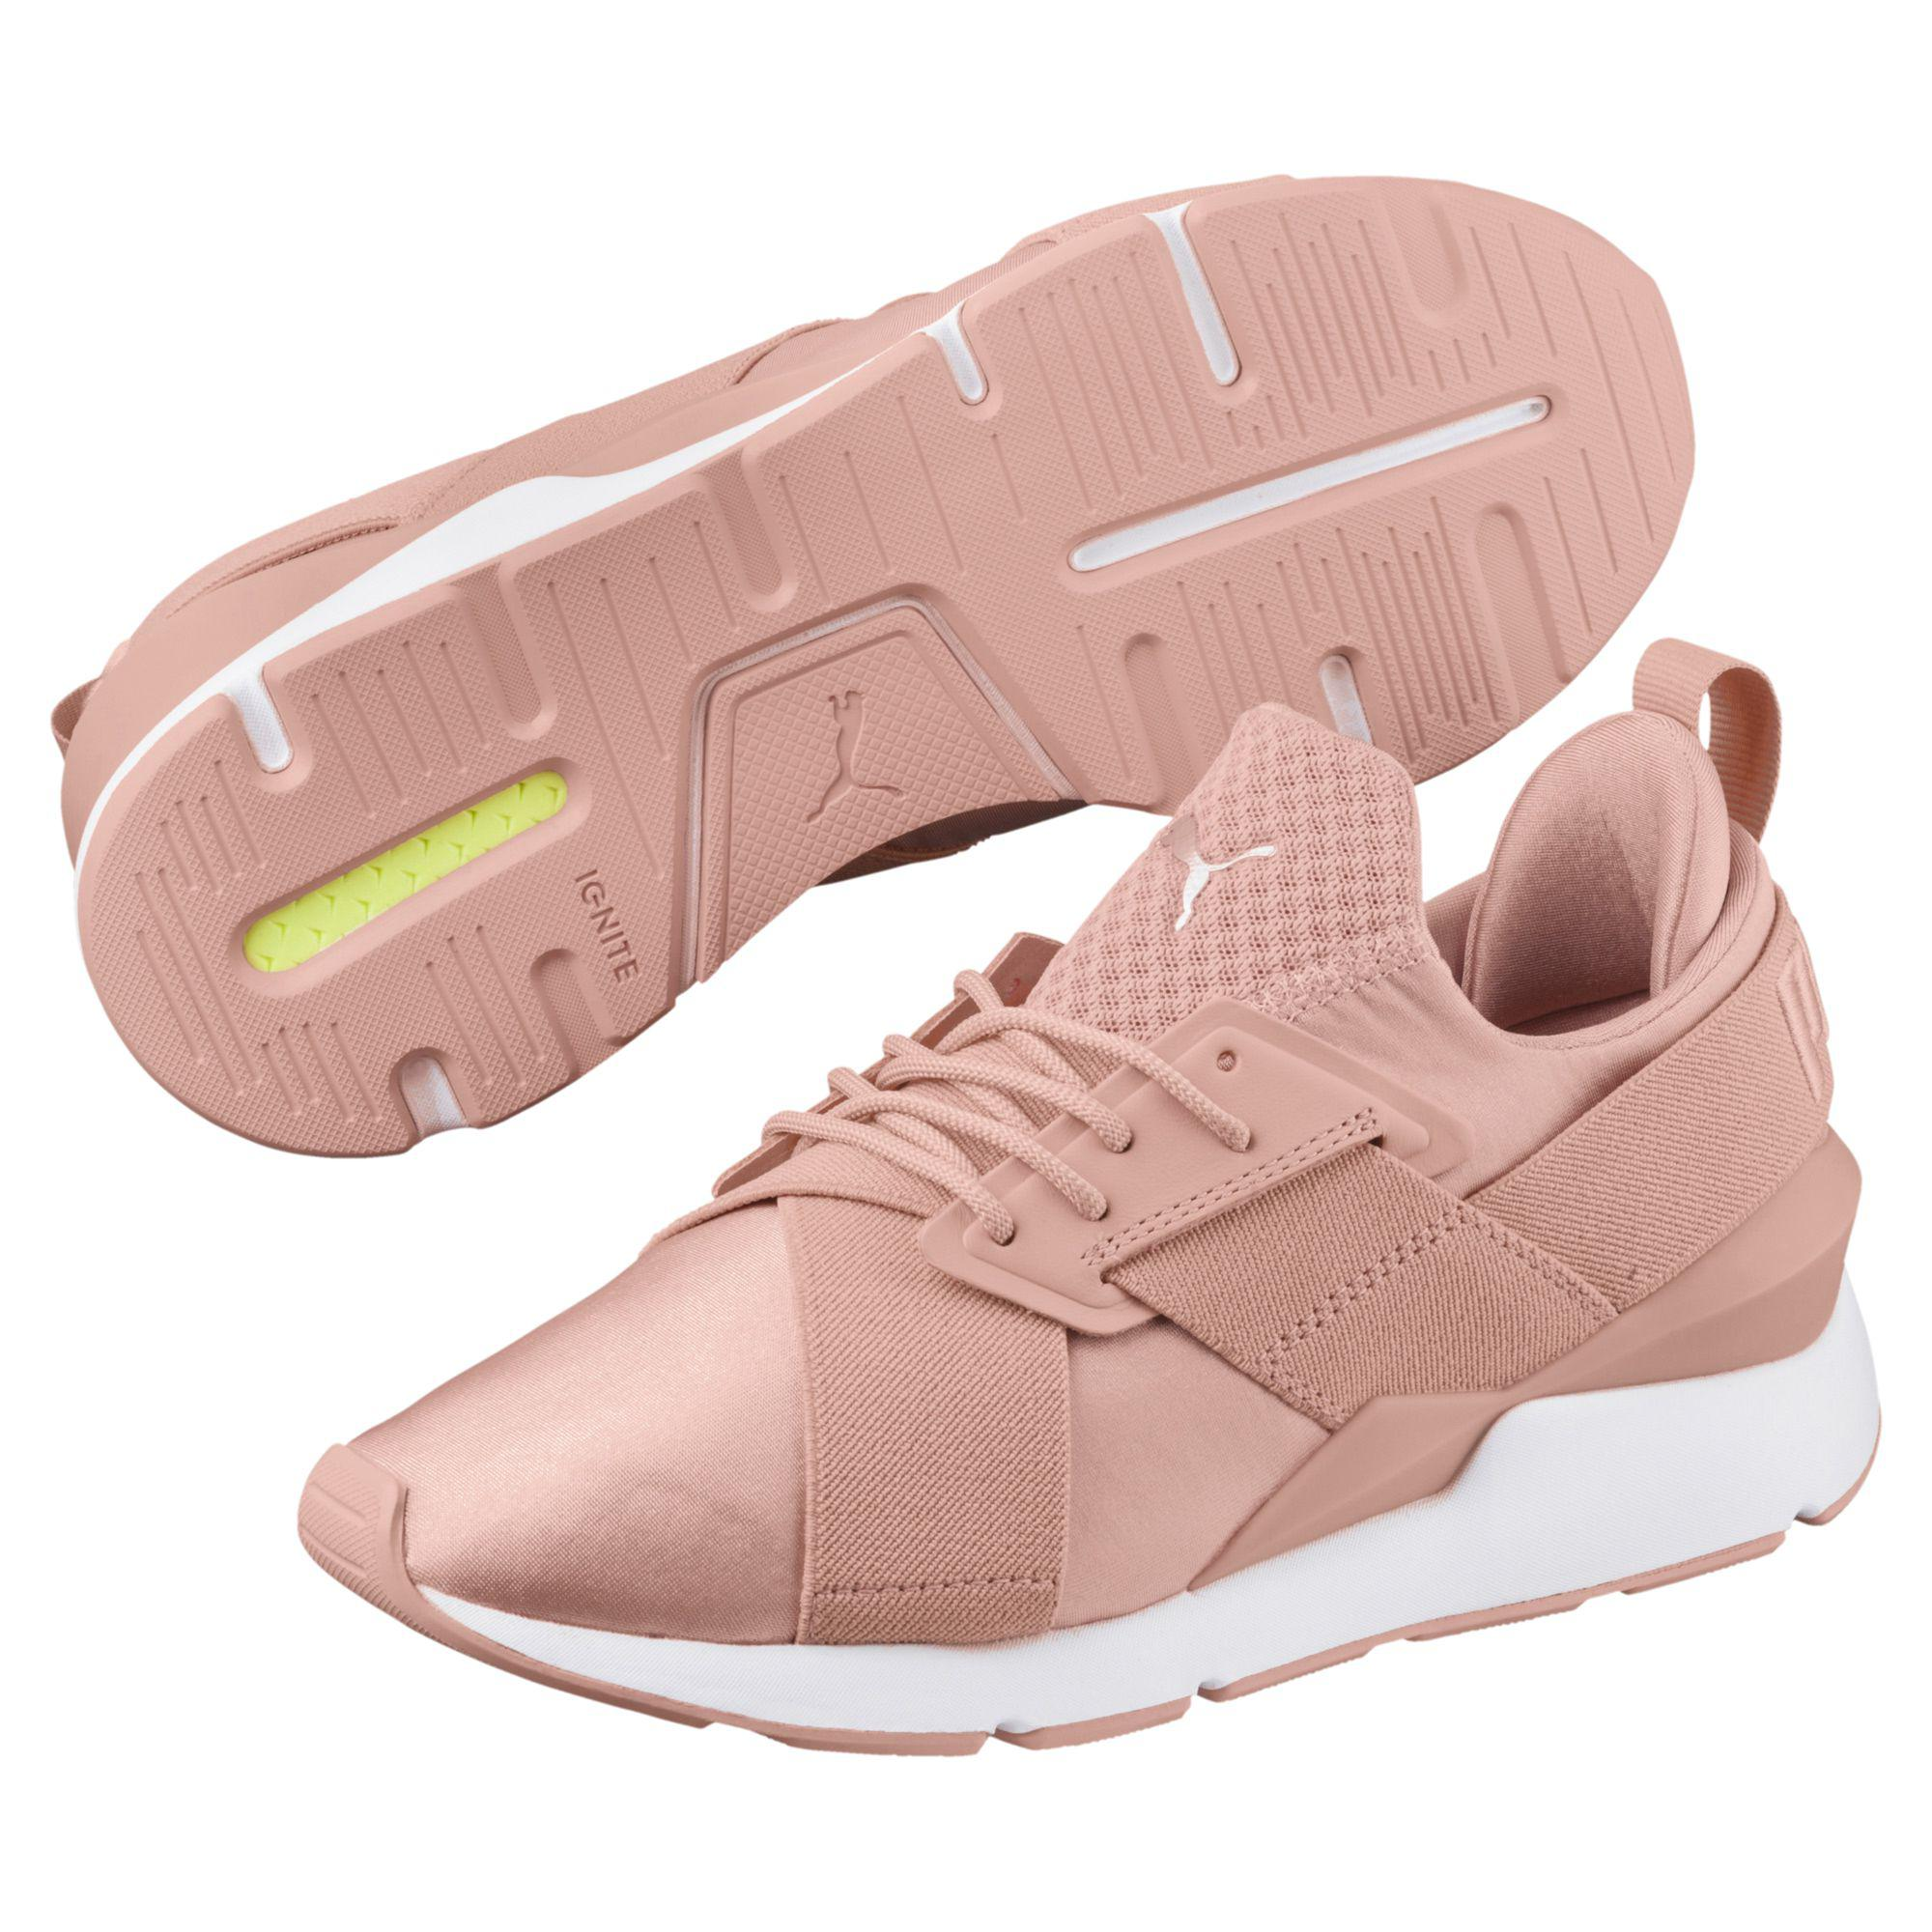 Lyst - PUMA Muse Satin Women s Sneakers in Pink 1f978982c